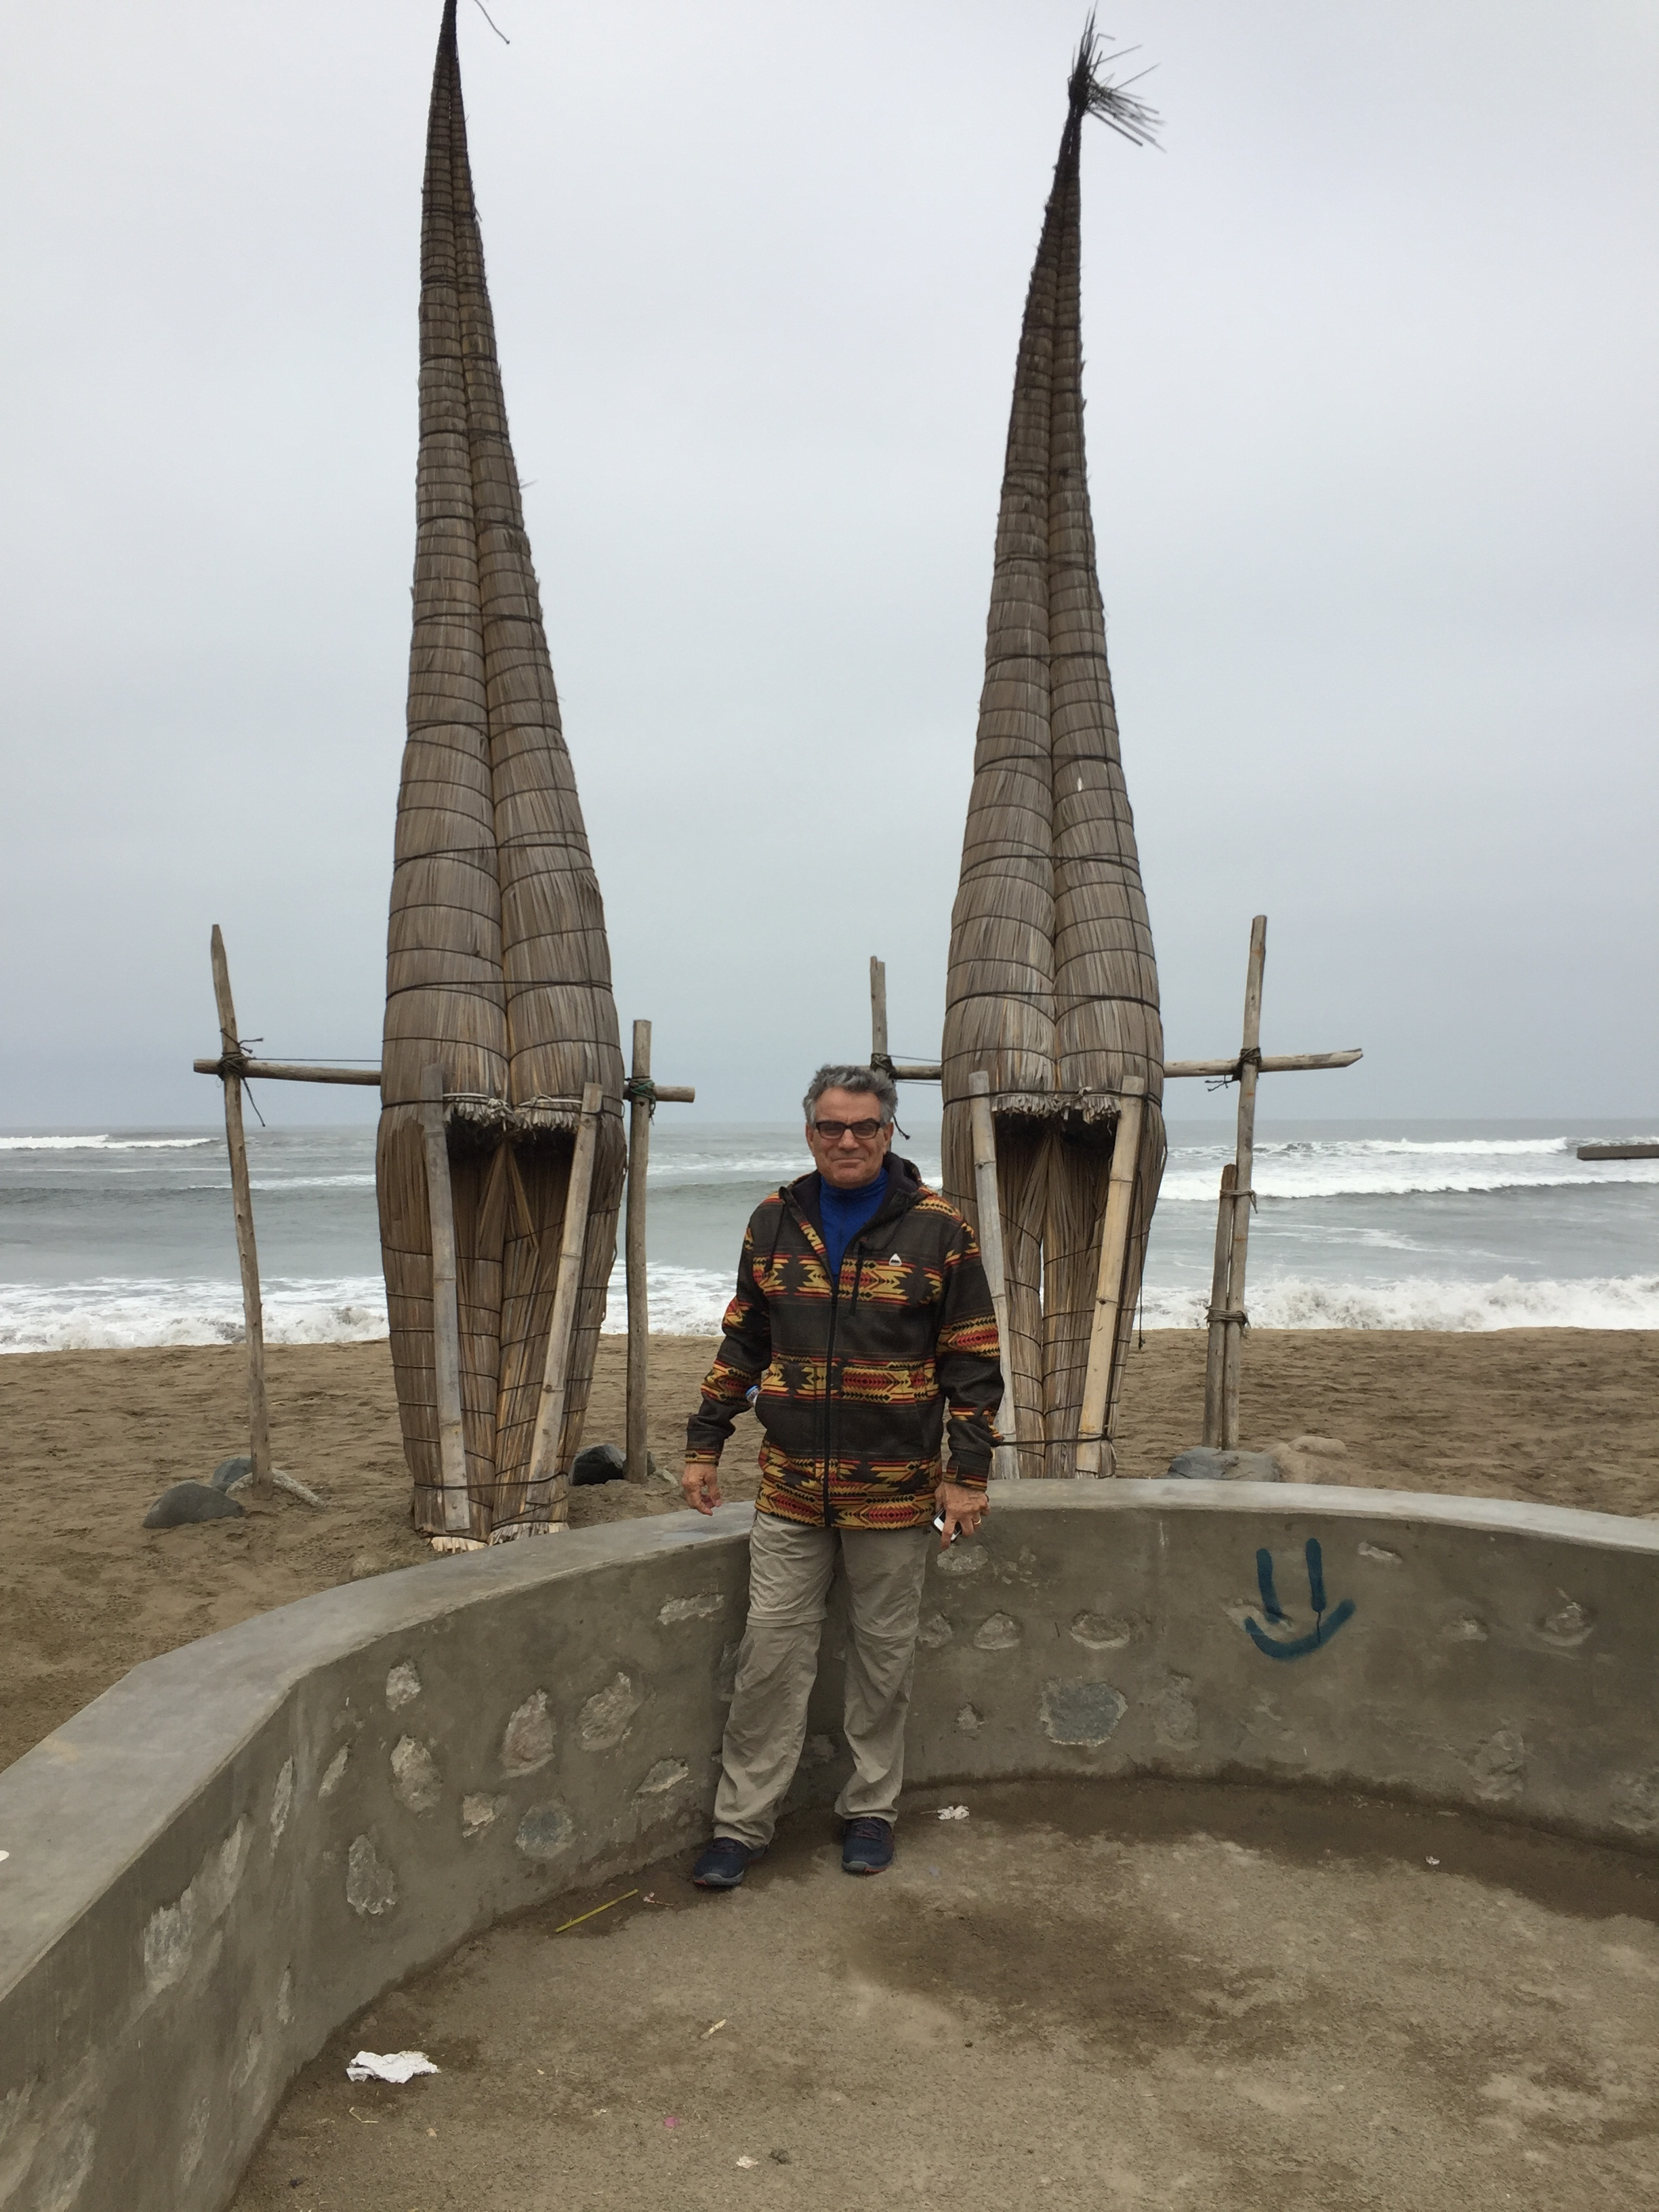 Frank at the beach, these are boats made from reeds